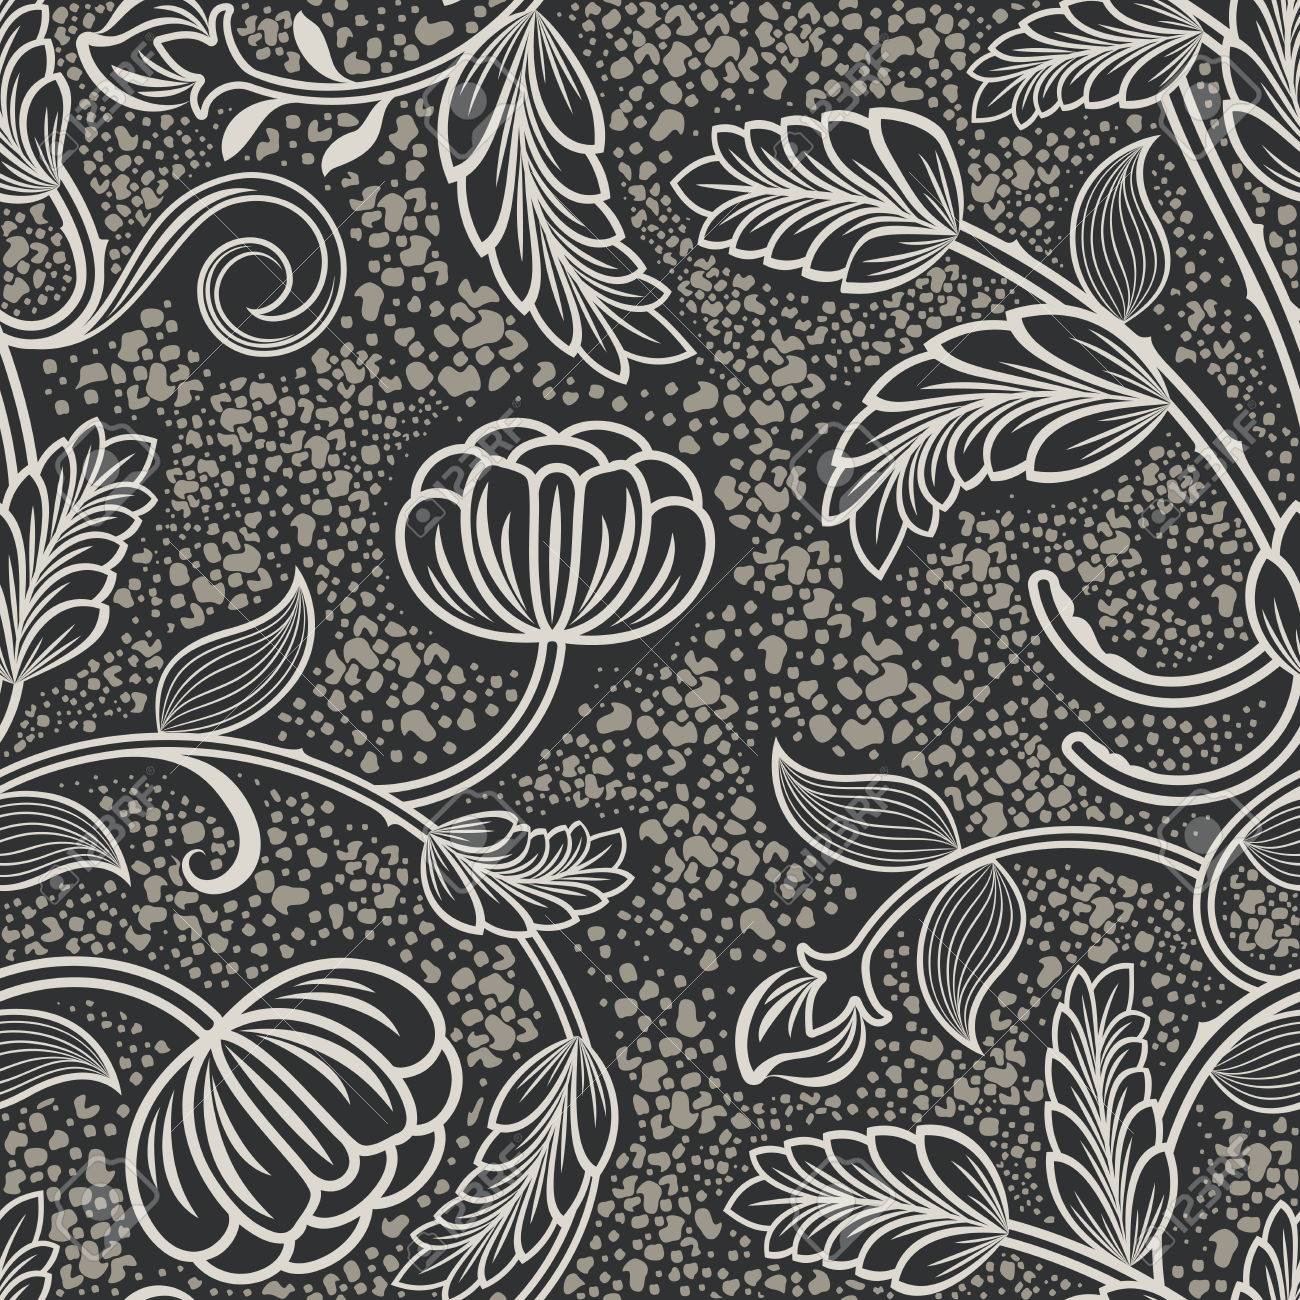 Seamless black and white vintage wallpaper pattern vector illustration stock vector 86557961